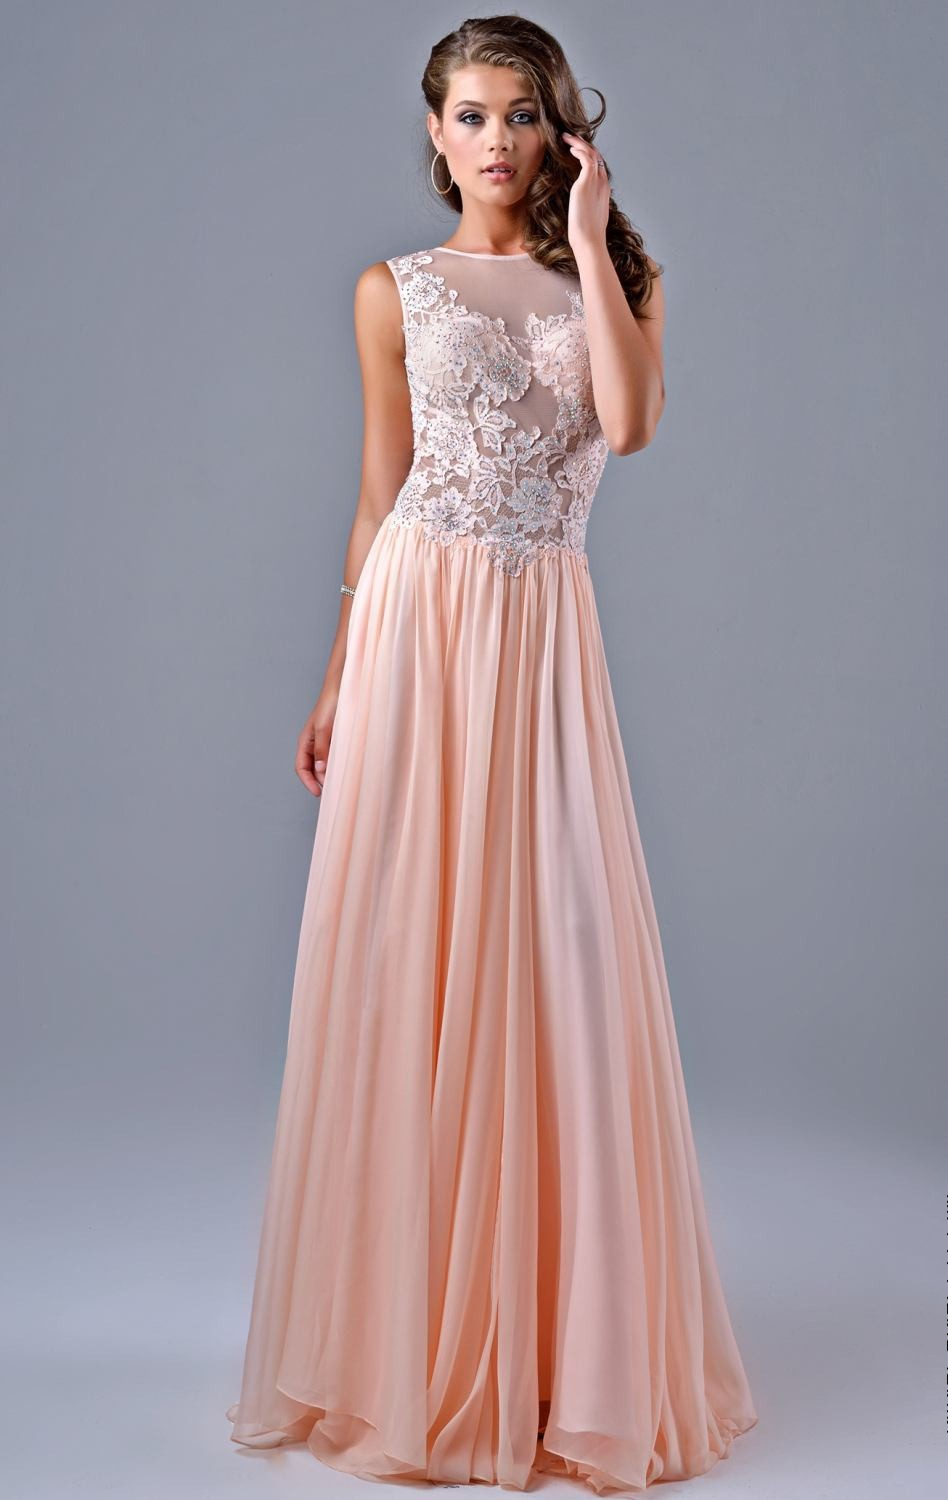 Soft Pink Prom Dresses Price Soft Pink Prom Dresses Price Trends ...